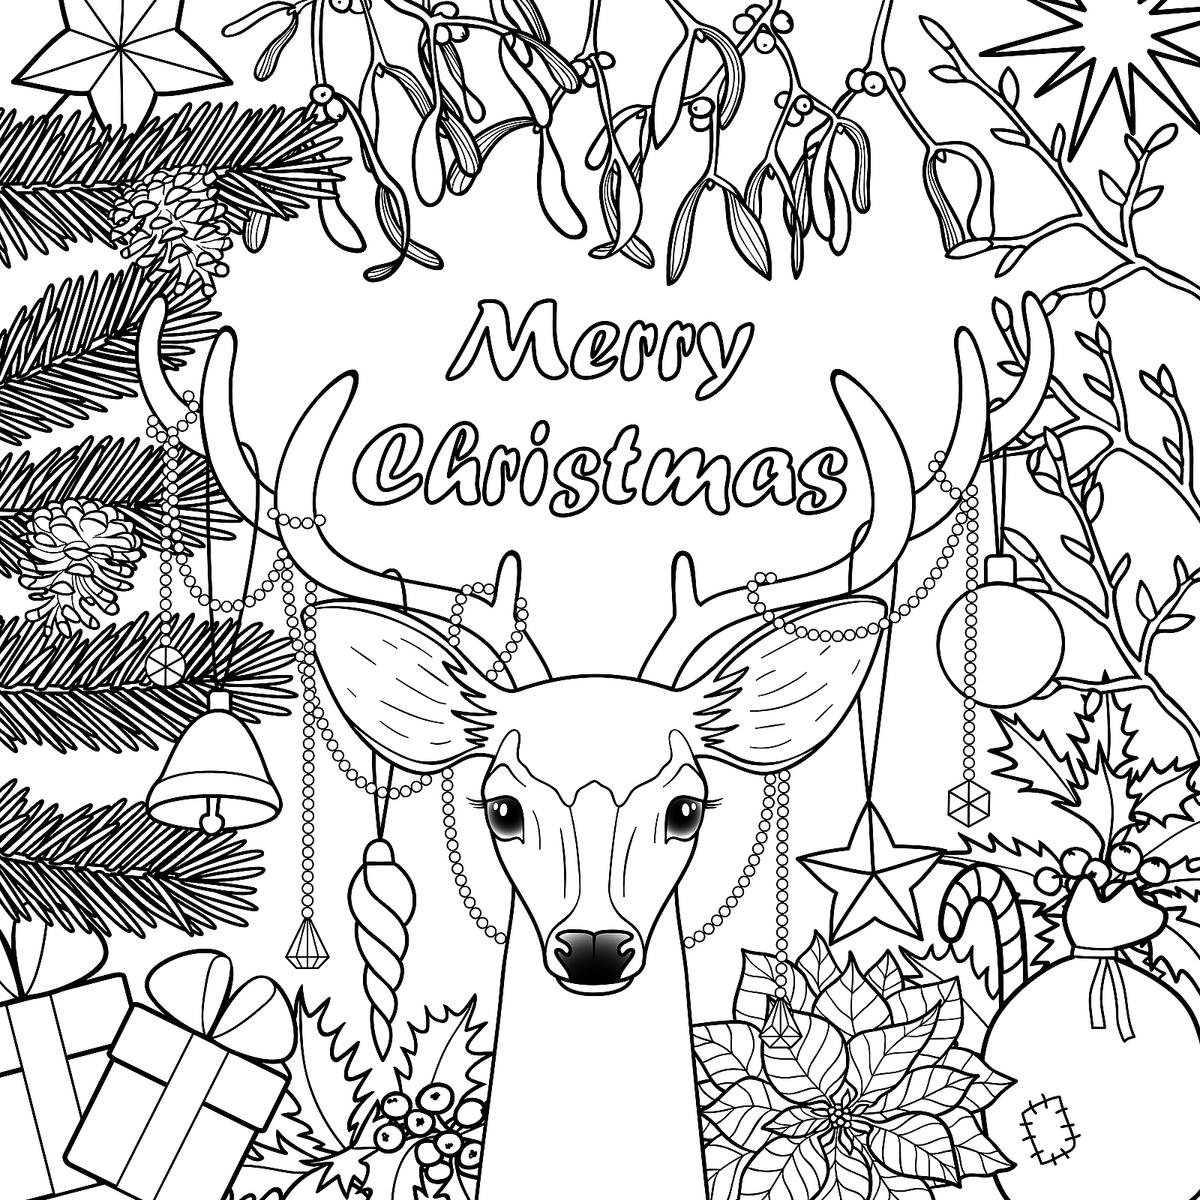 holiday coloring pages free christmas tree coloring pages for childrens printable for free free coloring pages holiday